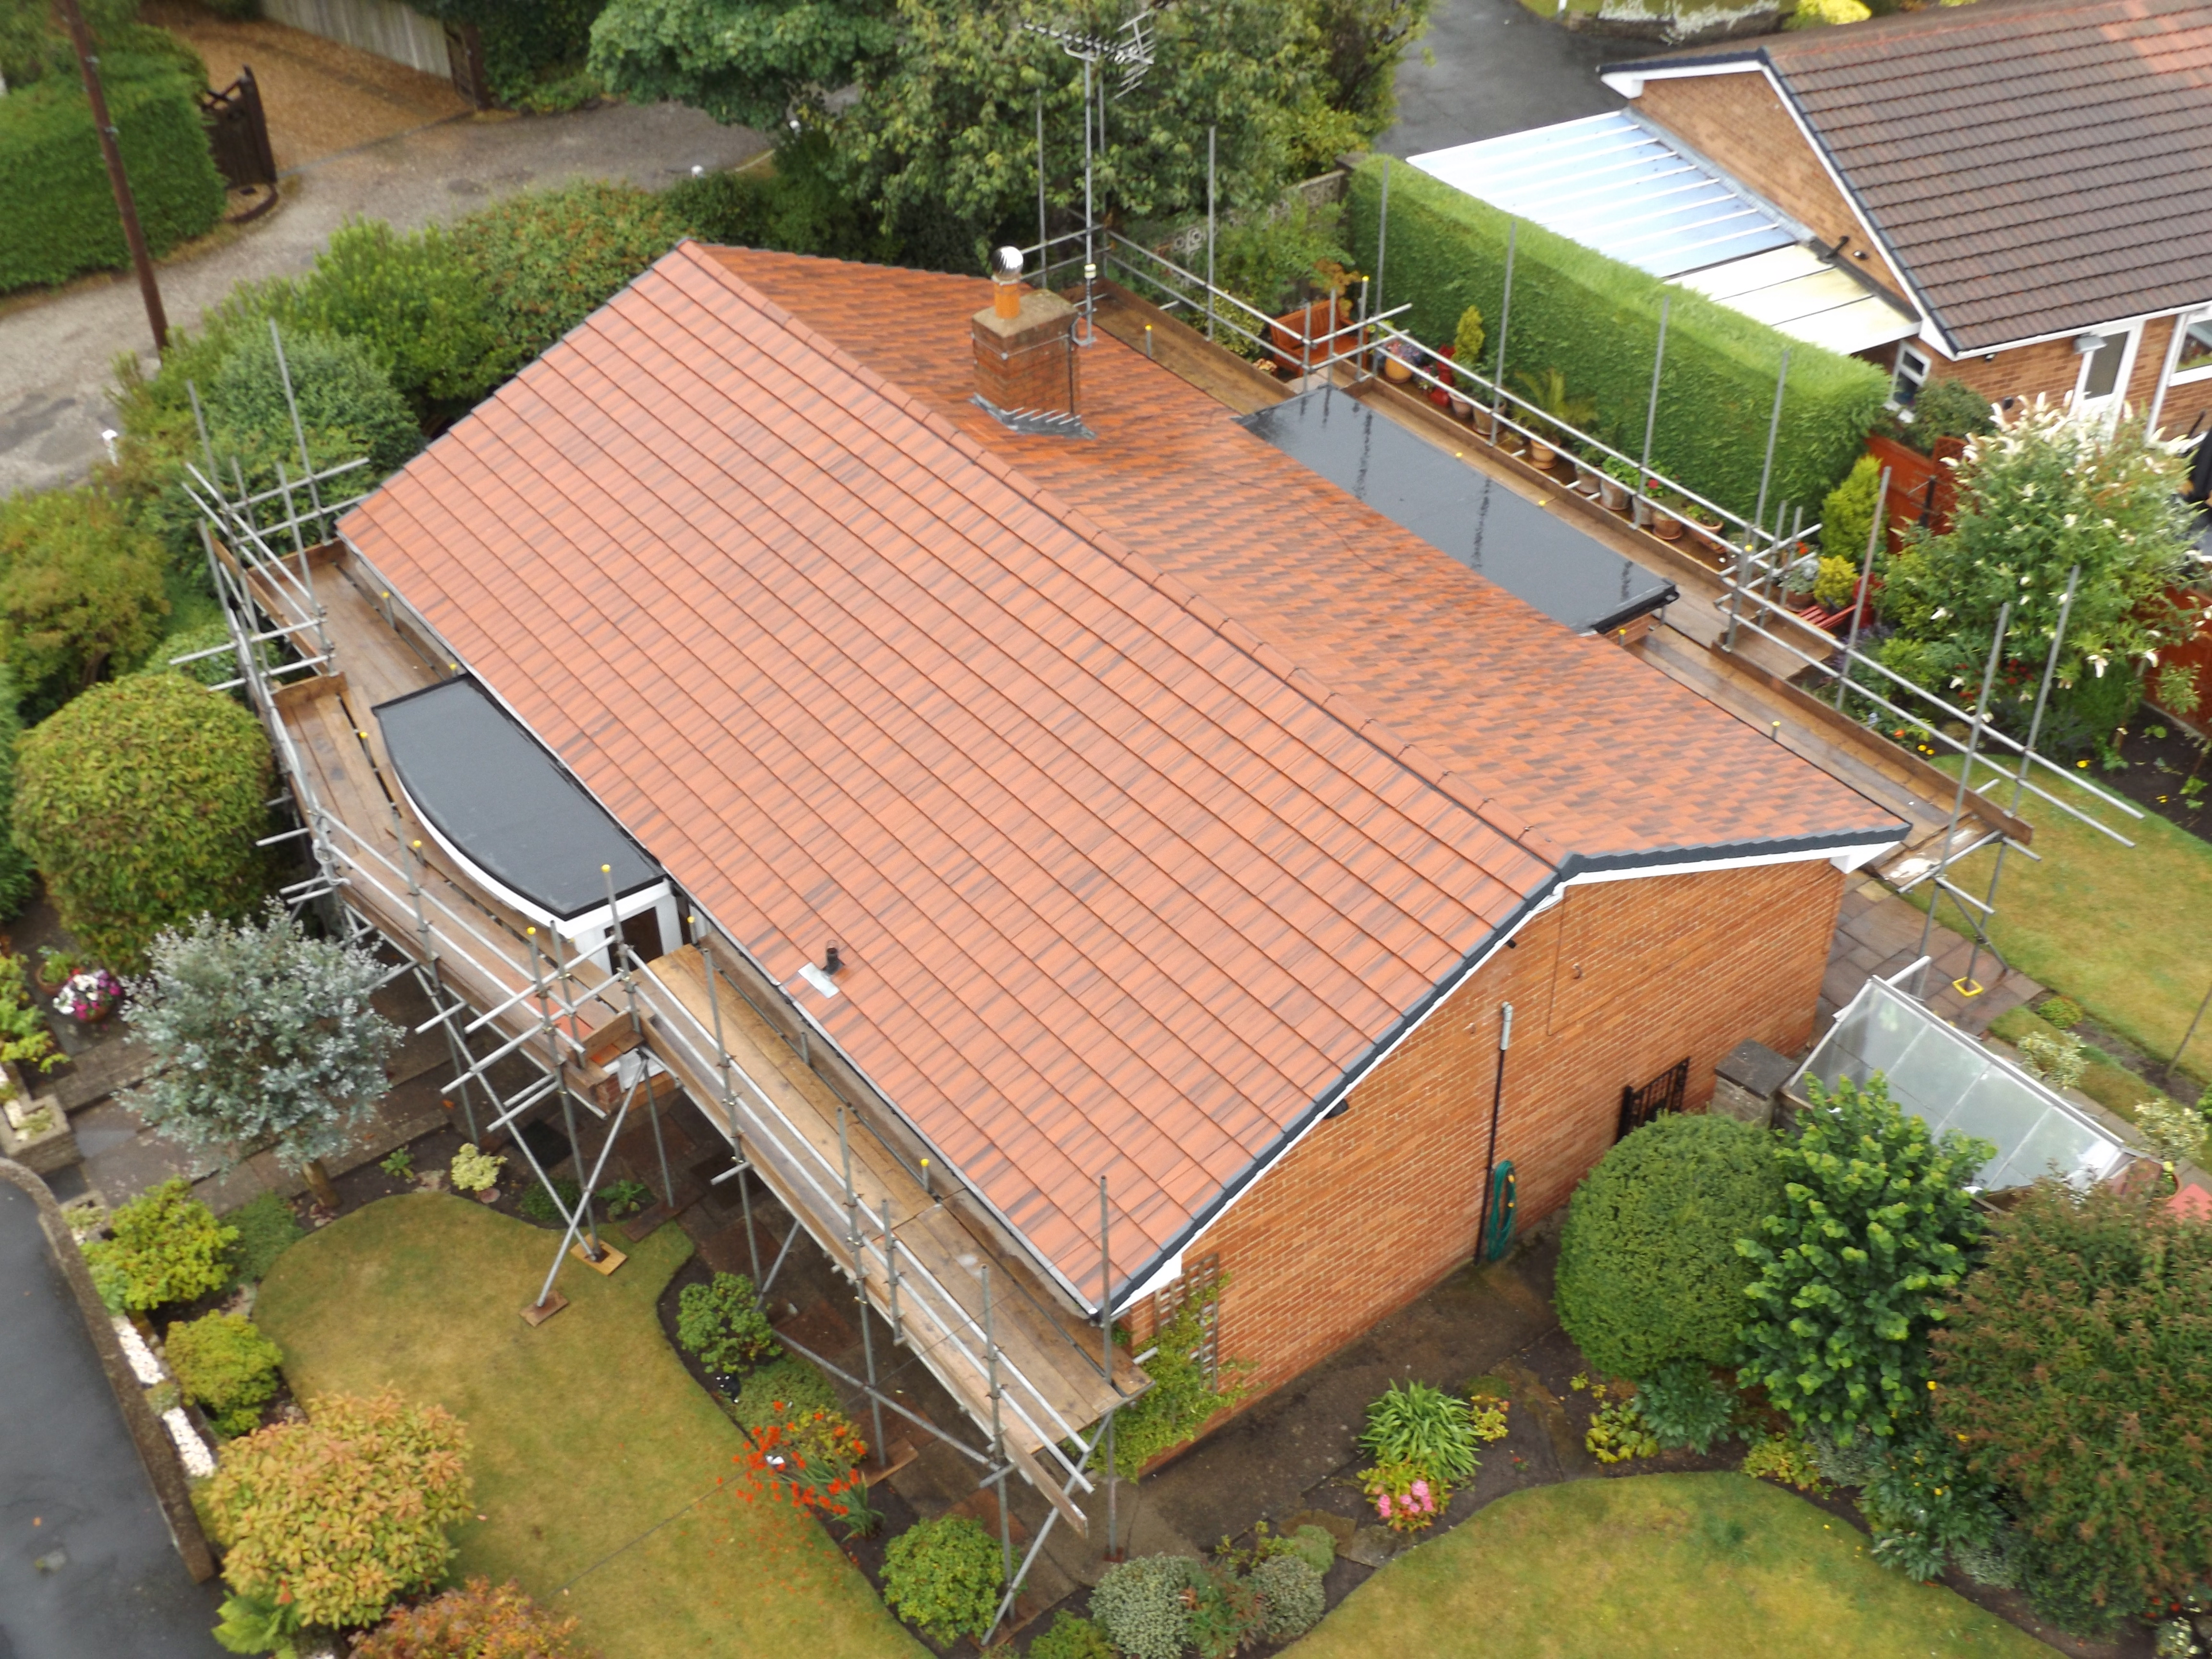 Wirral Roofing: Roof Renewal, Wallasey, Wirral, Liverpool, Chester & North